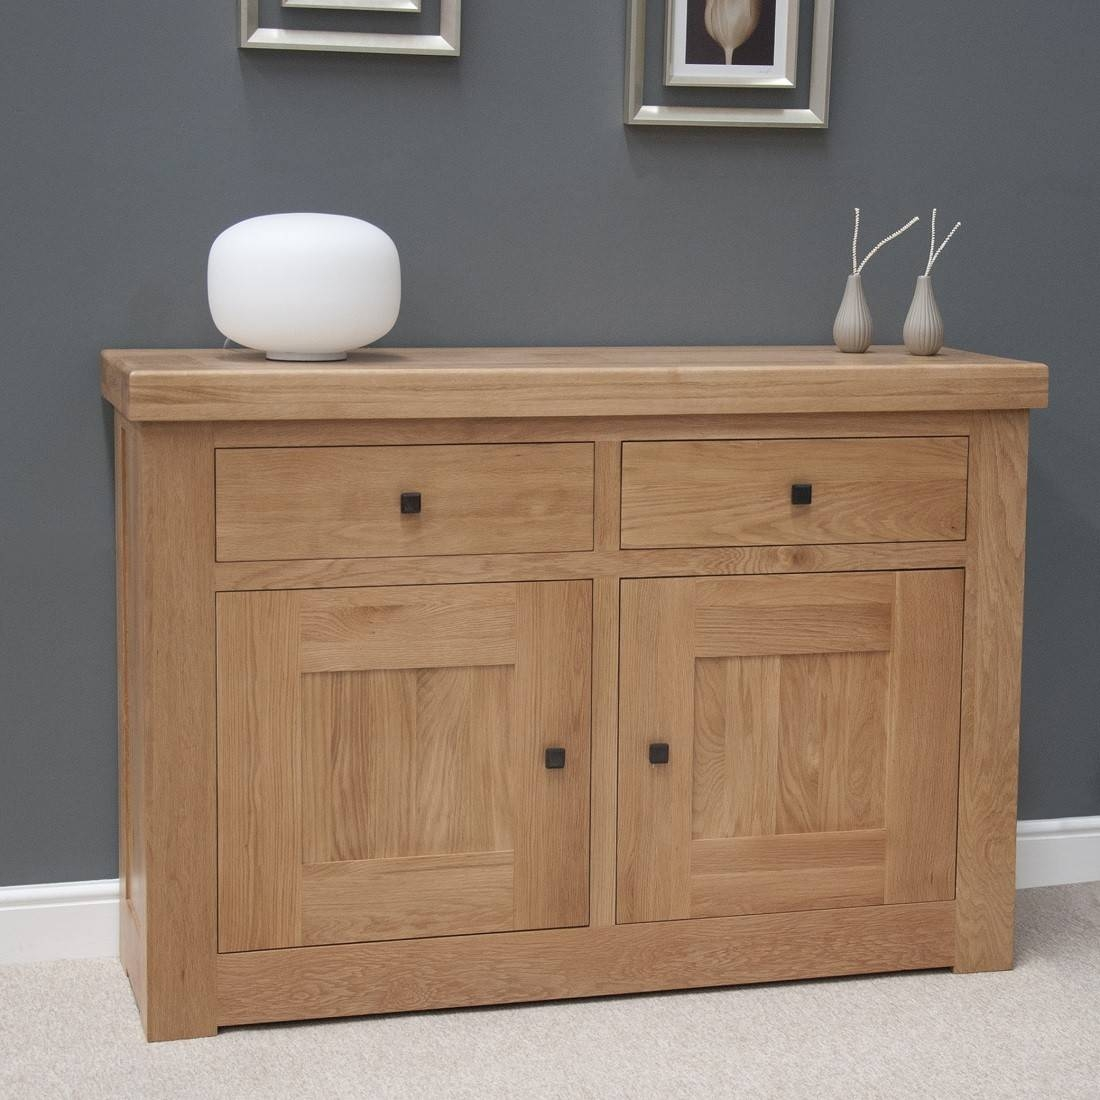 French Bordeaux Oak Small 2 Door Sideboard | Oak Furniture Uk Intended For Most Recently Released 2 Door Sideboards (#5 of 15)